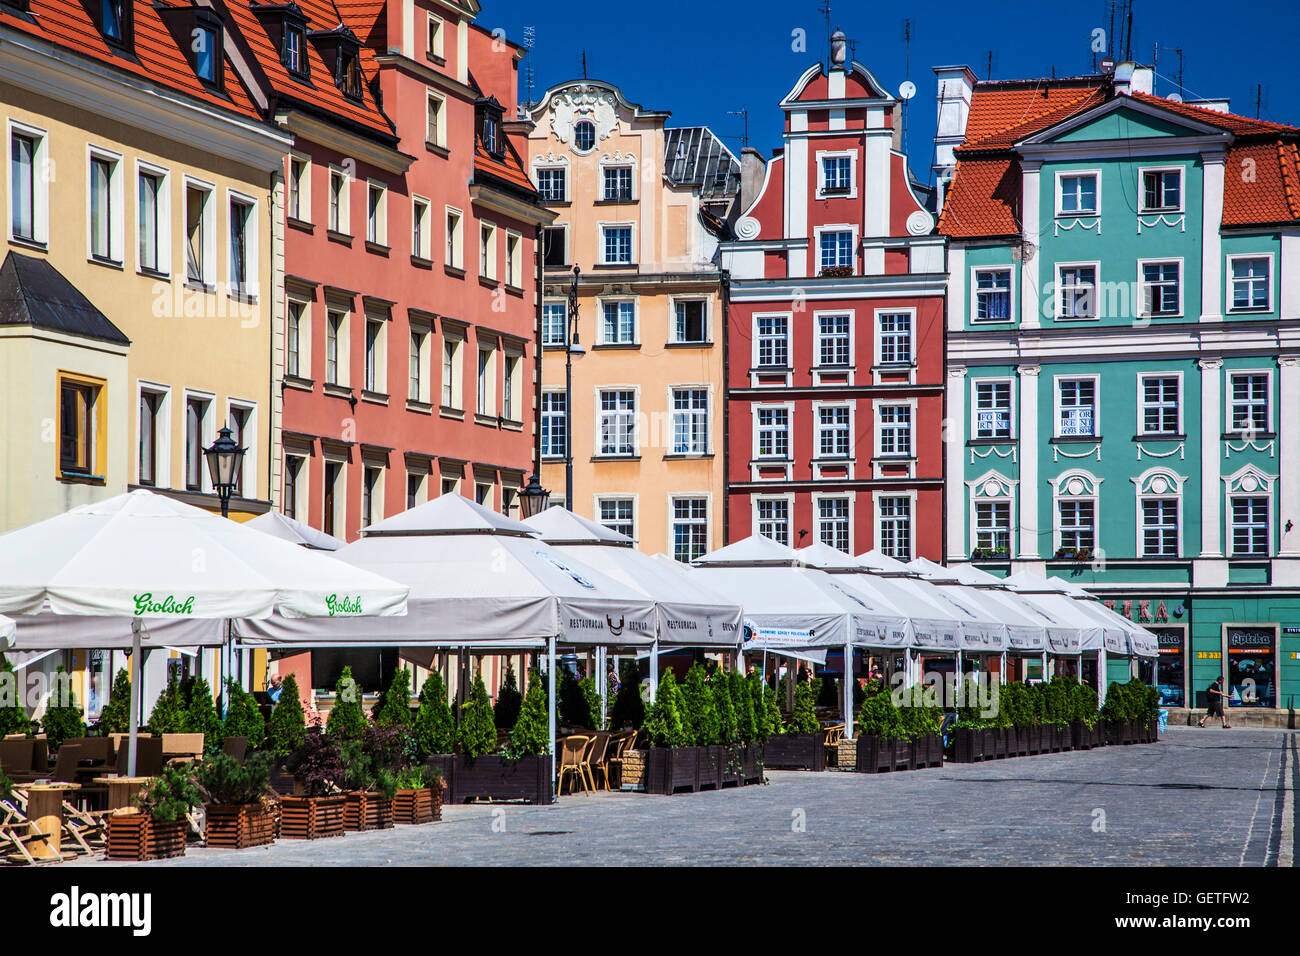 Outdoor Restaurant Bar And Medieval Houses In Wroclaw S Old Town Stock Photo Alamy